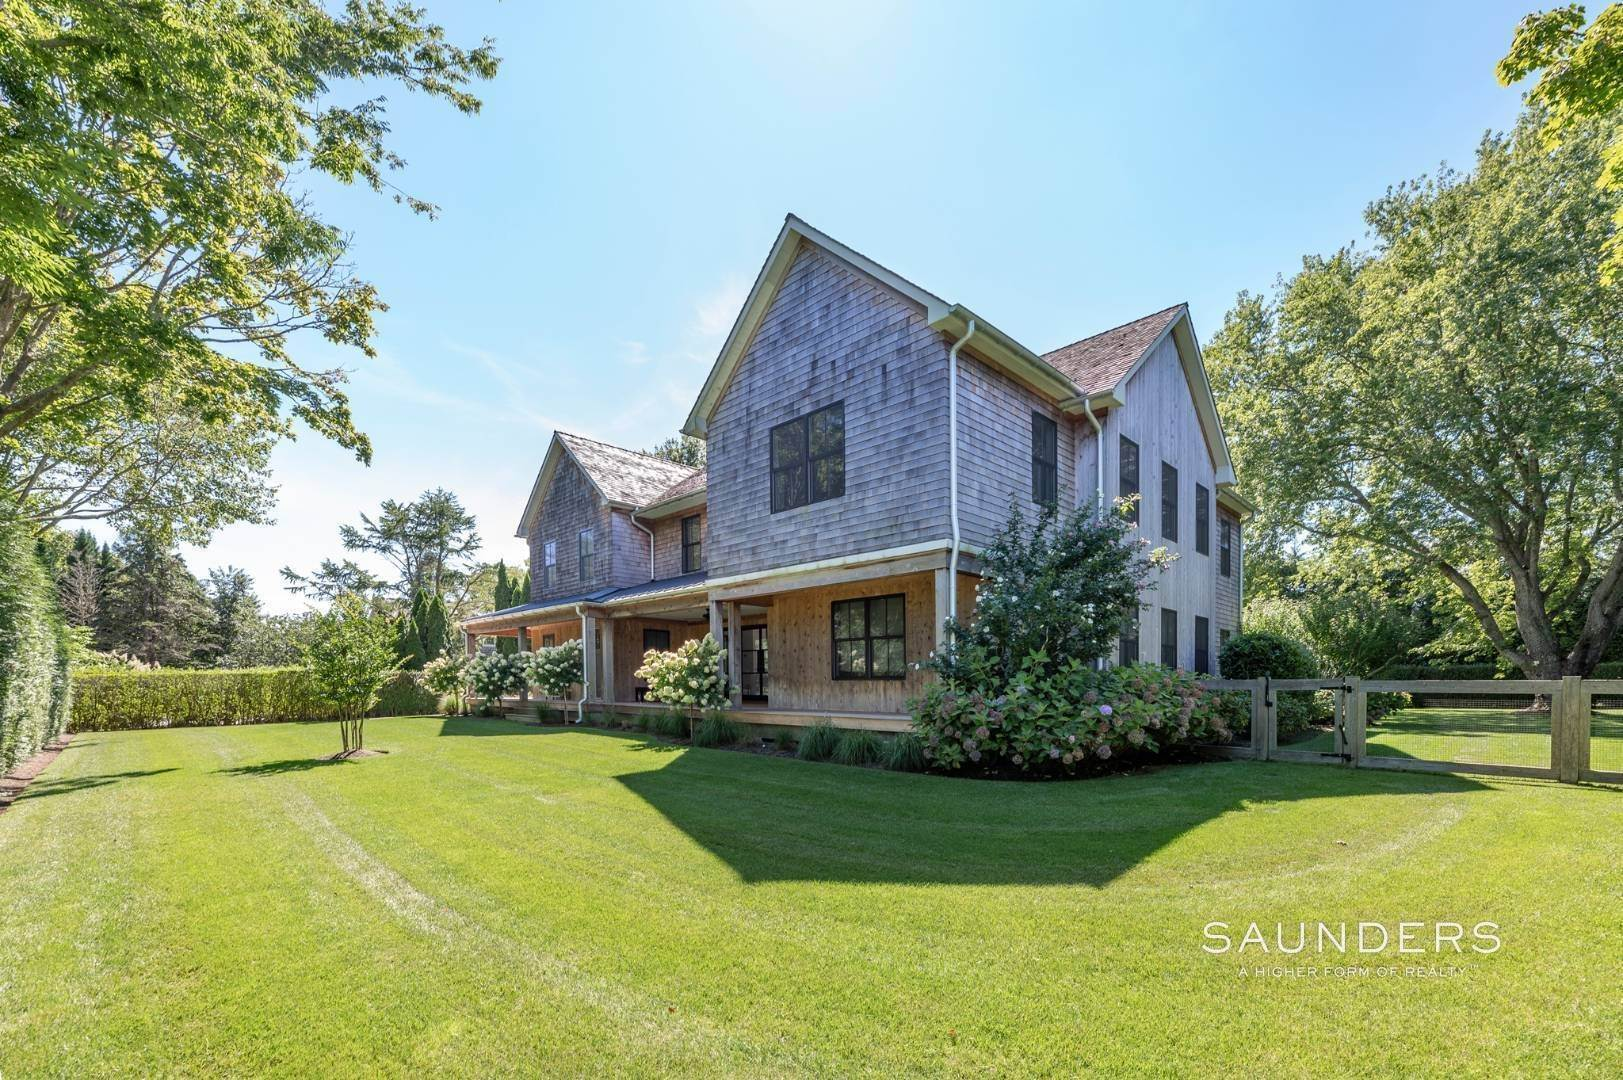 4. Single Family Homes for Sale at European Chic In Bridgehampton South 139 Hildreth Avenue - 20 Audubon Avenue, Bridgehampton, Southampton Town, NY 11937